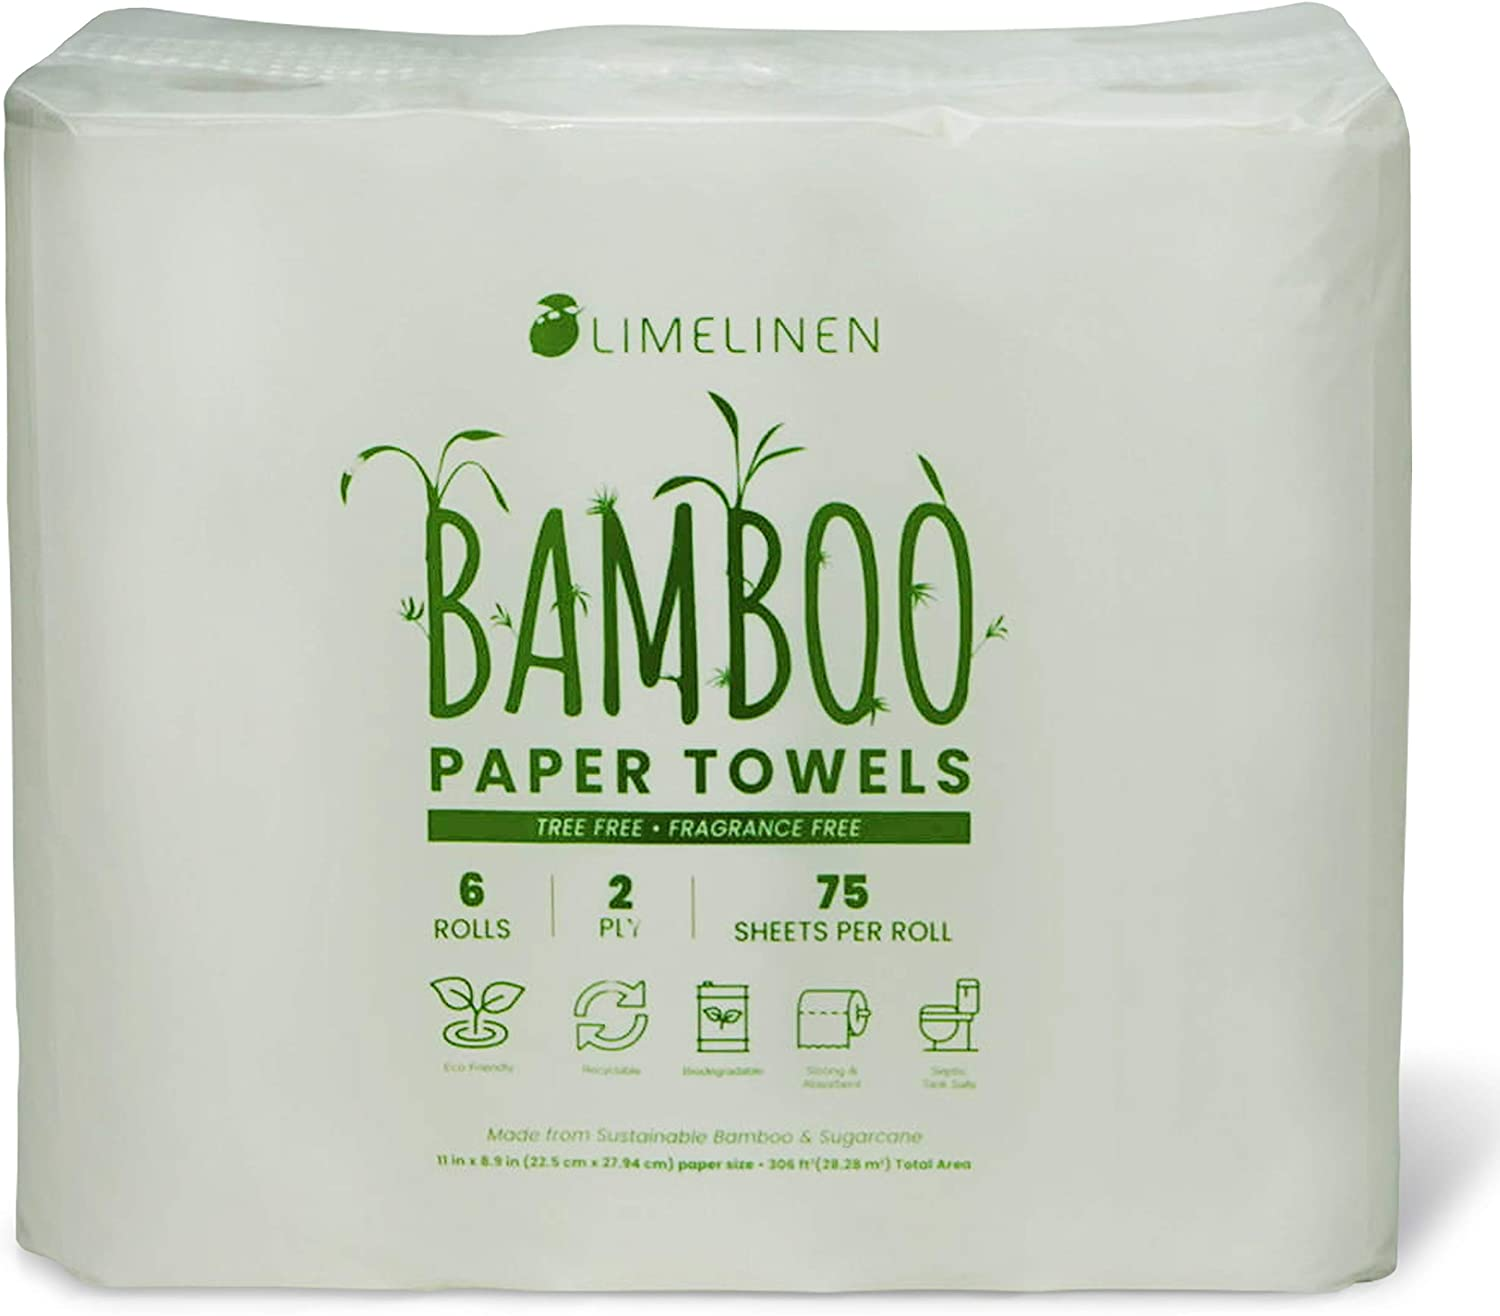 LIMELINEN Bamboo 12 sold out Rolls Paper Towels Topics on TV Frien Biodegradable Eco